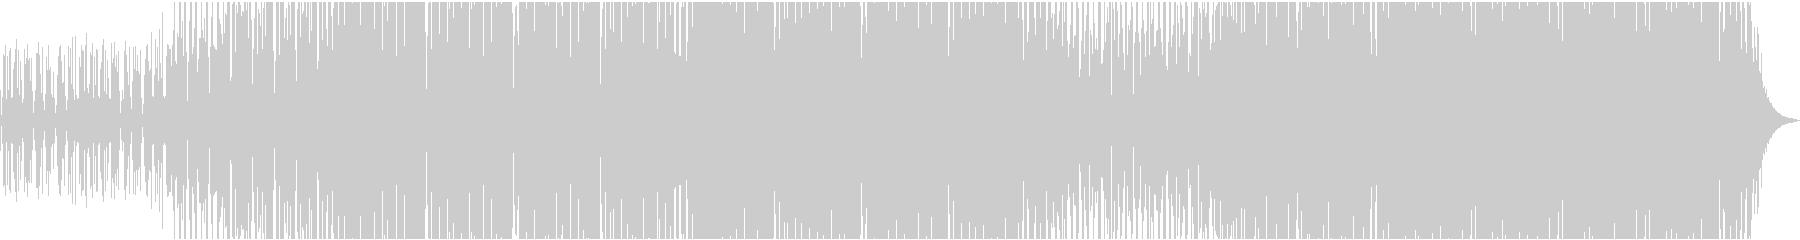 Fassion Style's unreproduced waveform